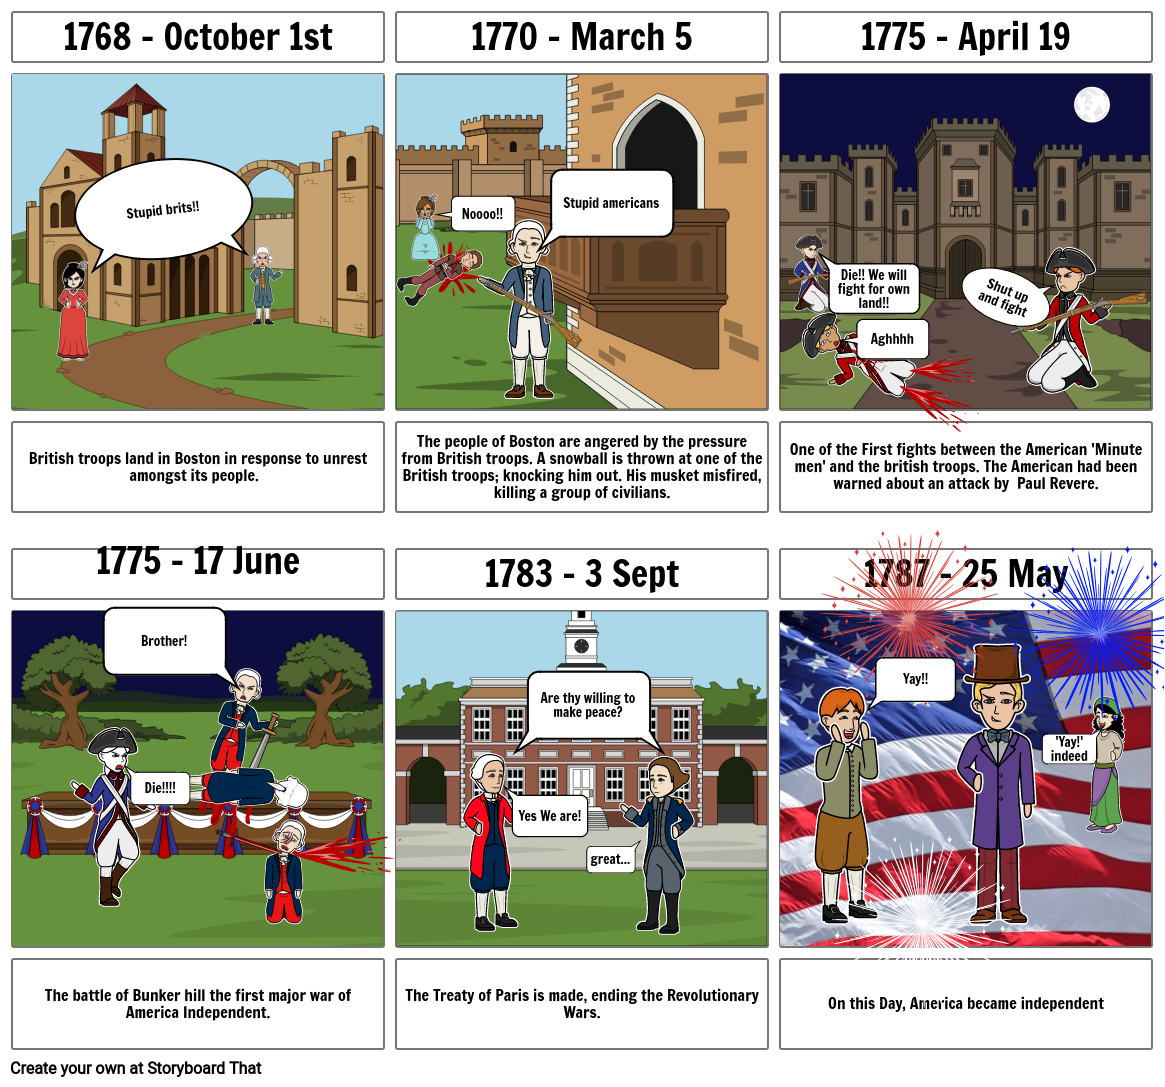 The timeline of American Revolution